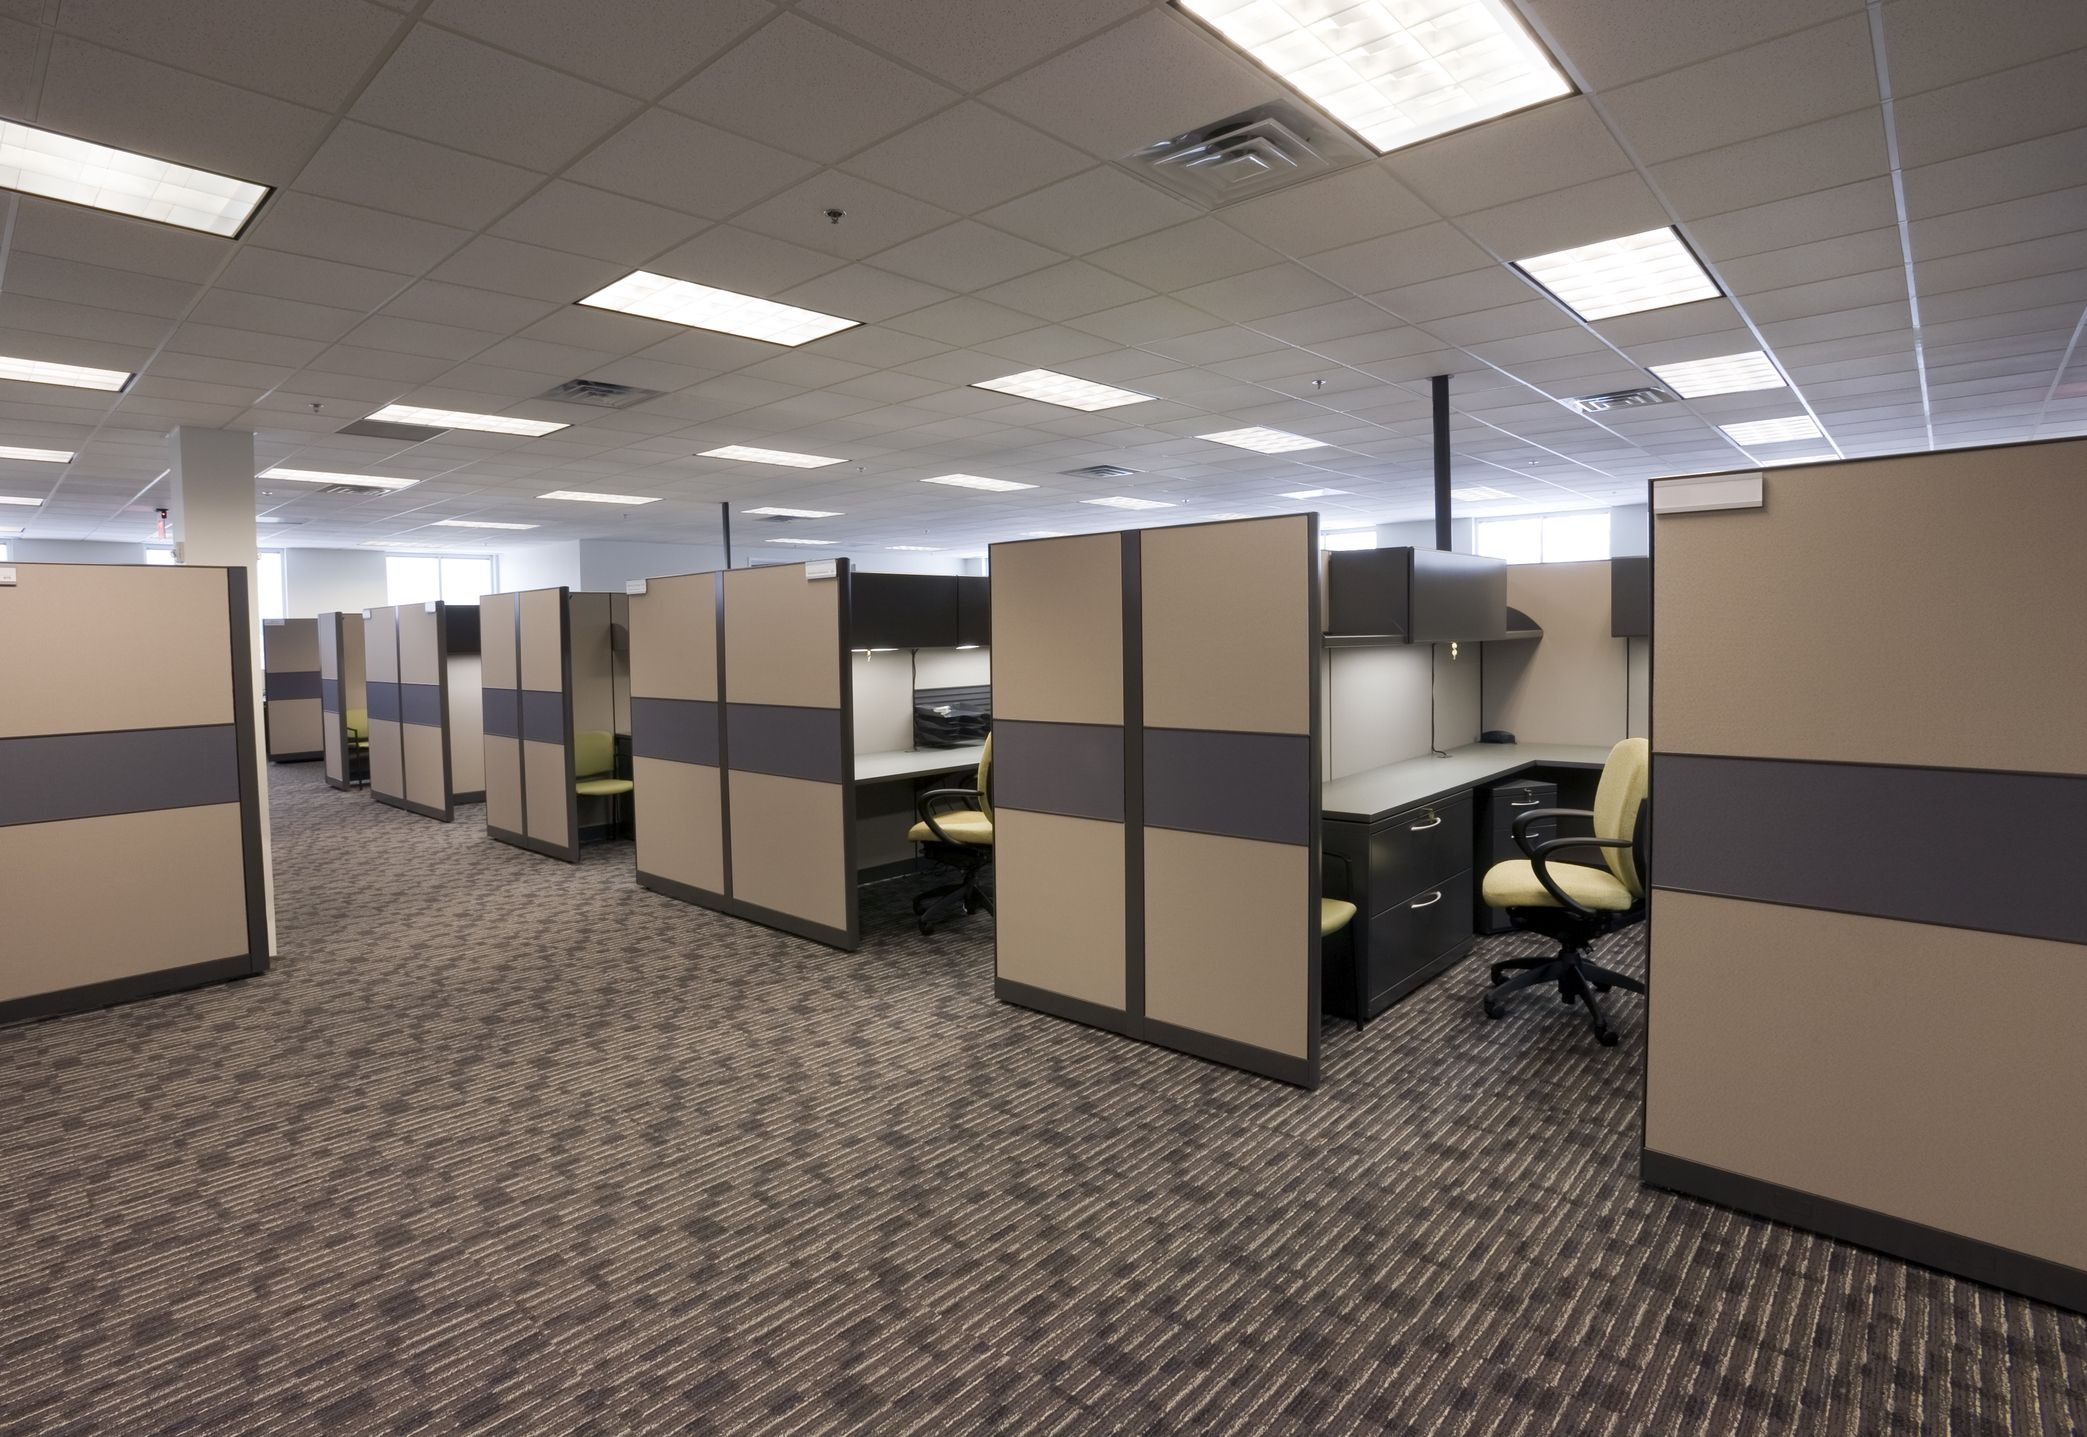 1980s Office Cubicles How To Clean Carpet Commercial Carpet